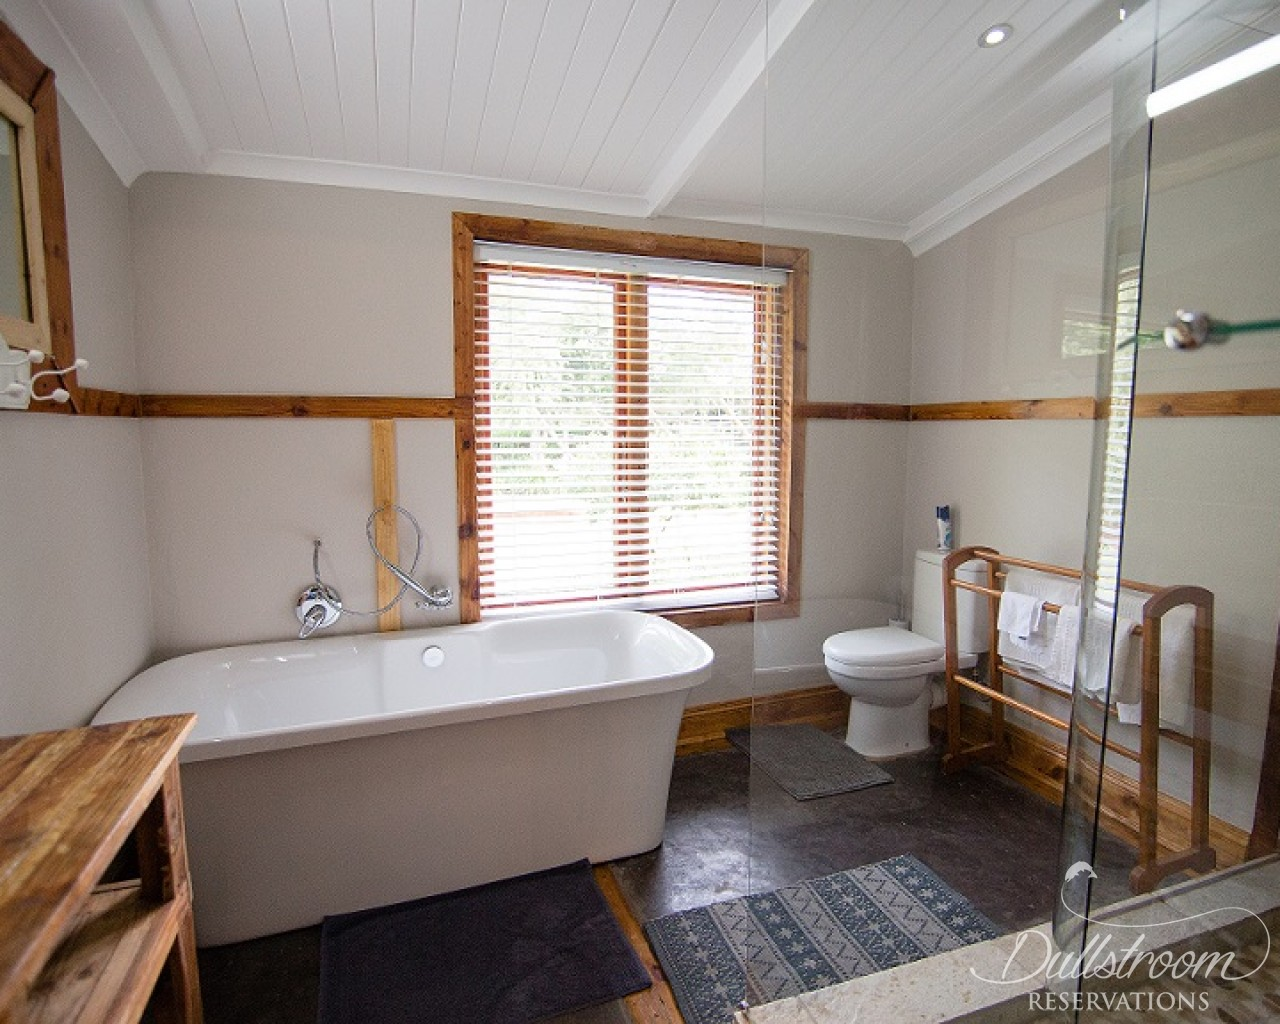 Van Der Poll - accommodation in Dullstroom | Dullstroom Reservations ...